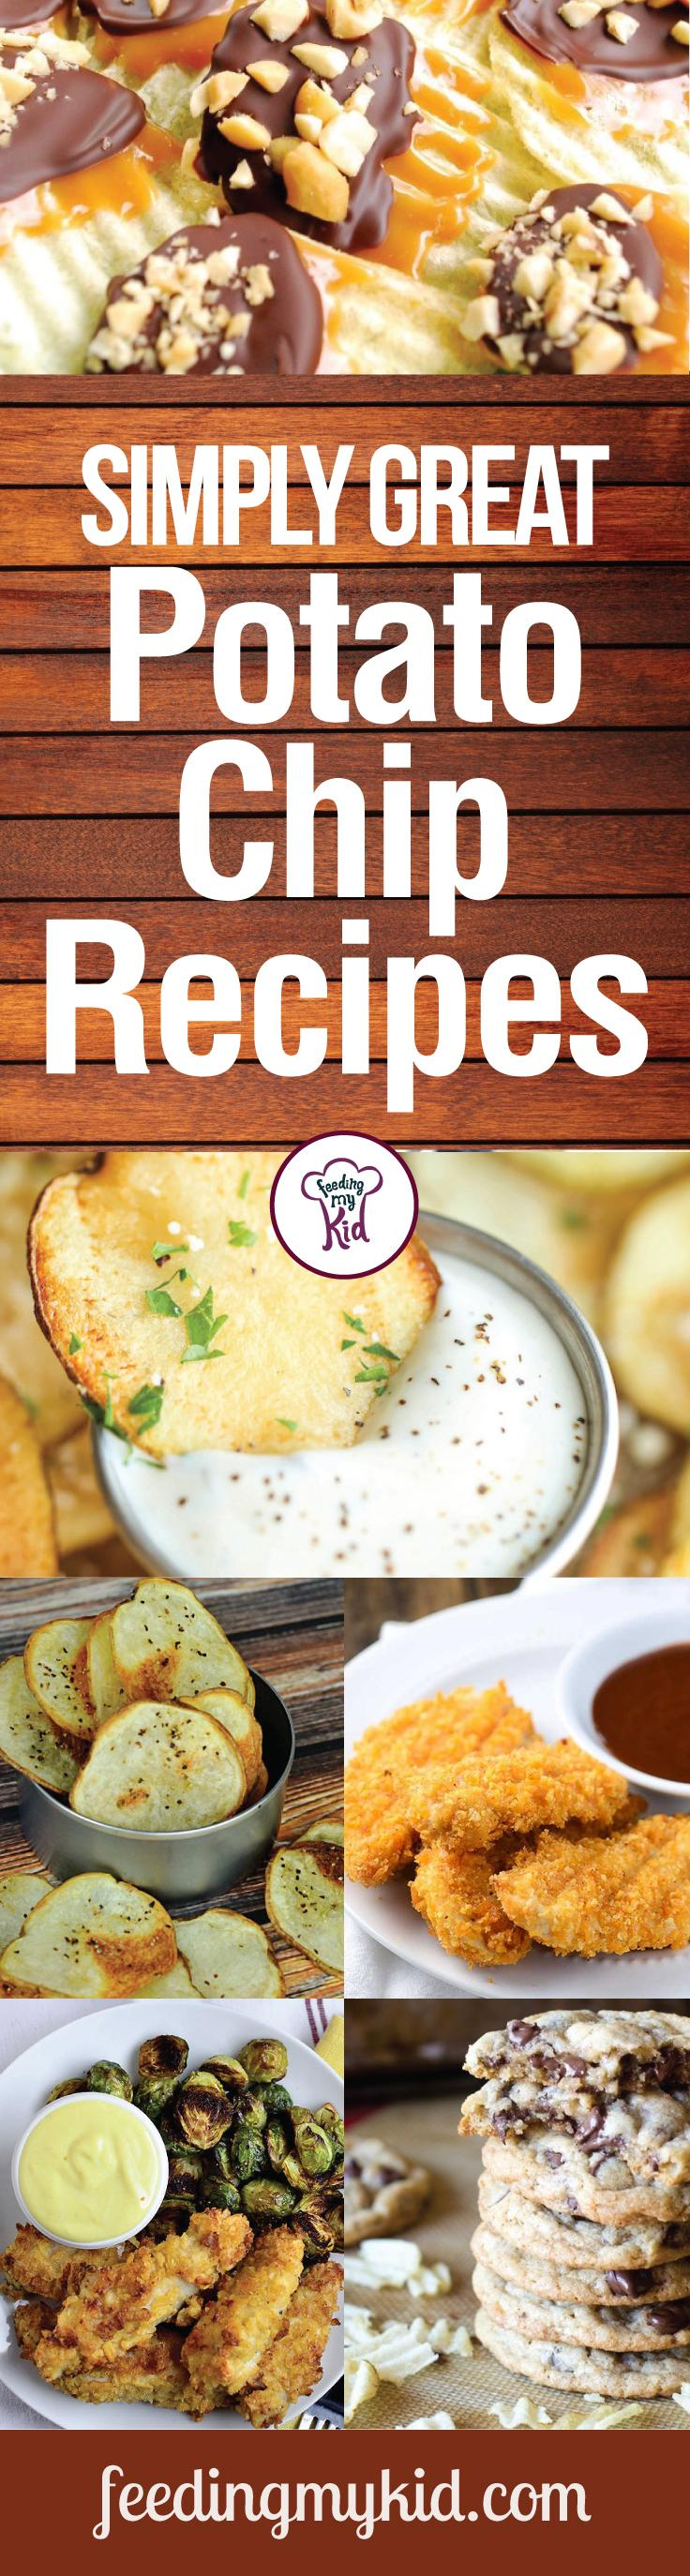 Simply Great Potato Chip Recipes - Potato chips have been a staple of american food culture for decades. Unfortunately, they have a bad reputation for being unhealthy and fattening, which is why we put together this more healthified list so you can indulge in a homemade tasty snack that is a better alternative to store bought chips. In these recipes you'll learn how to make potato chips and how to use potato chips in other recipes to make great tasting lunches and dinners.